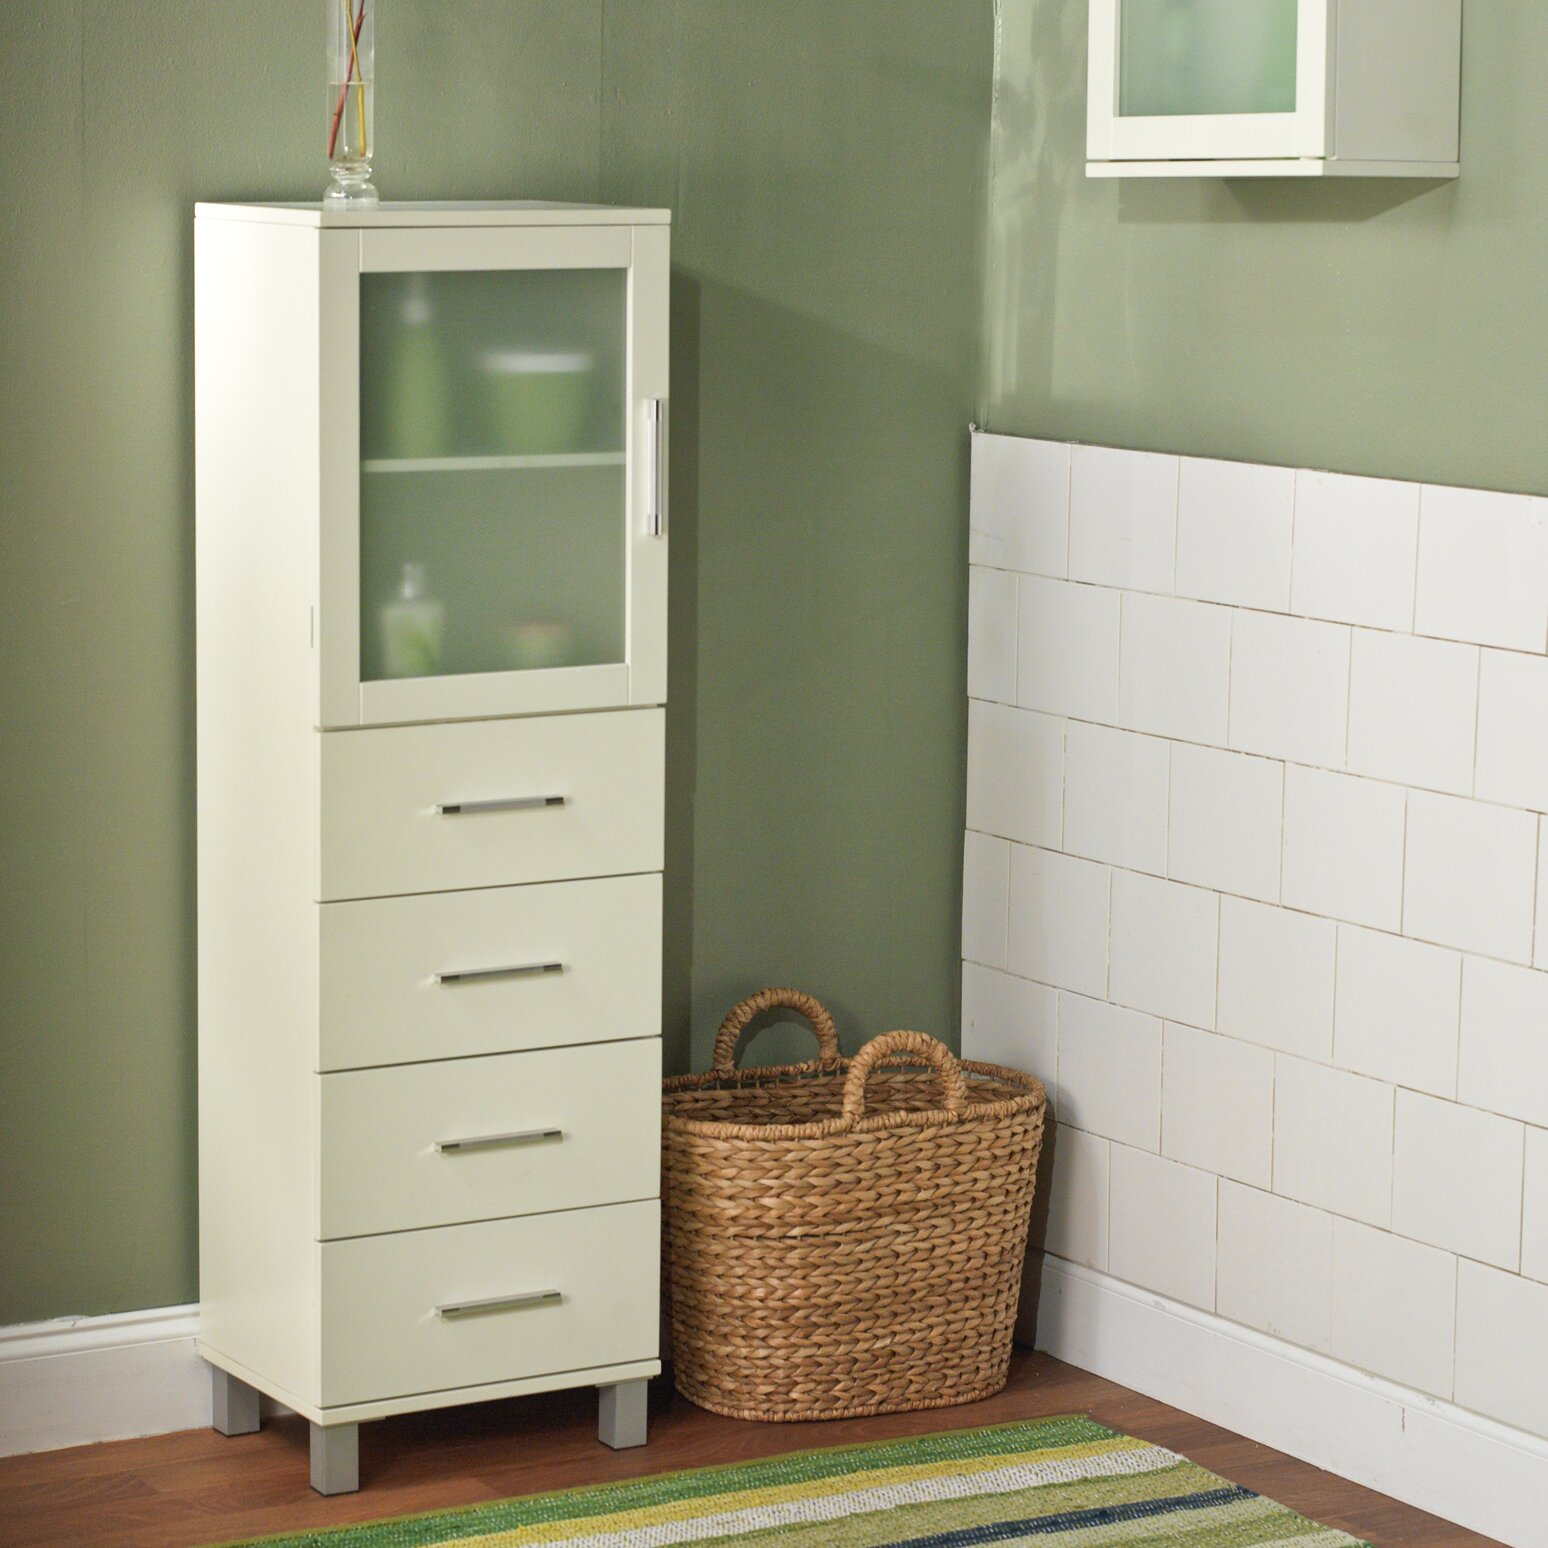 Freestanding Linen Cabinet Free Standing Linen Cabinets For Bathroom Winda 7 Furniture